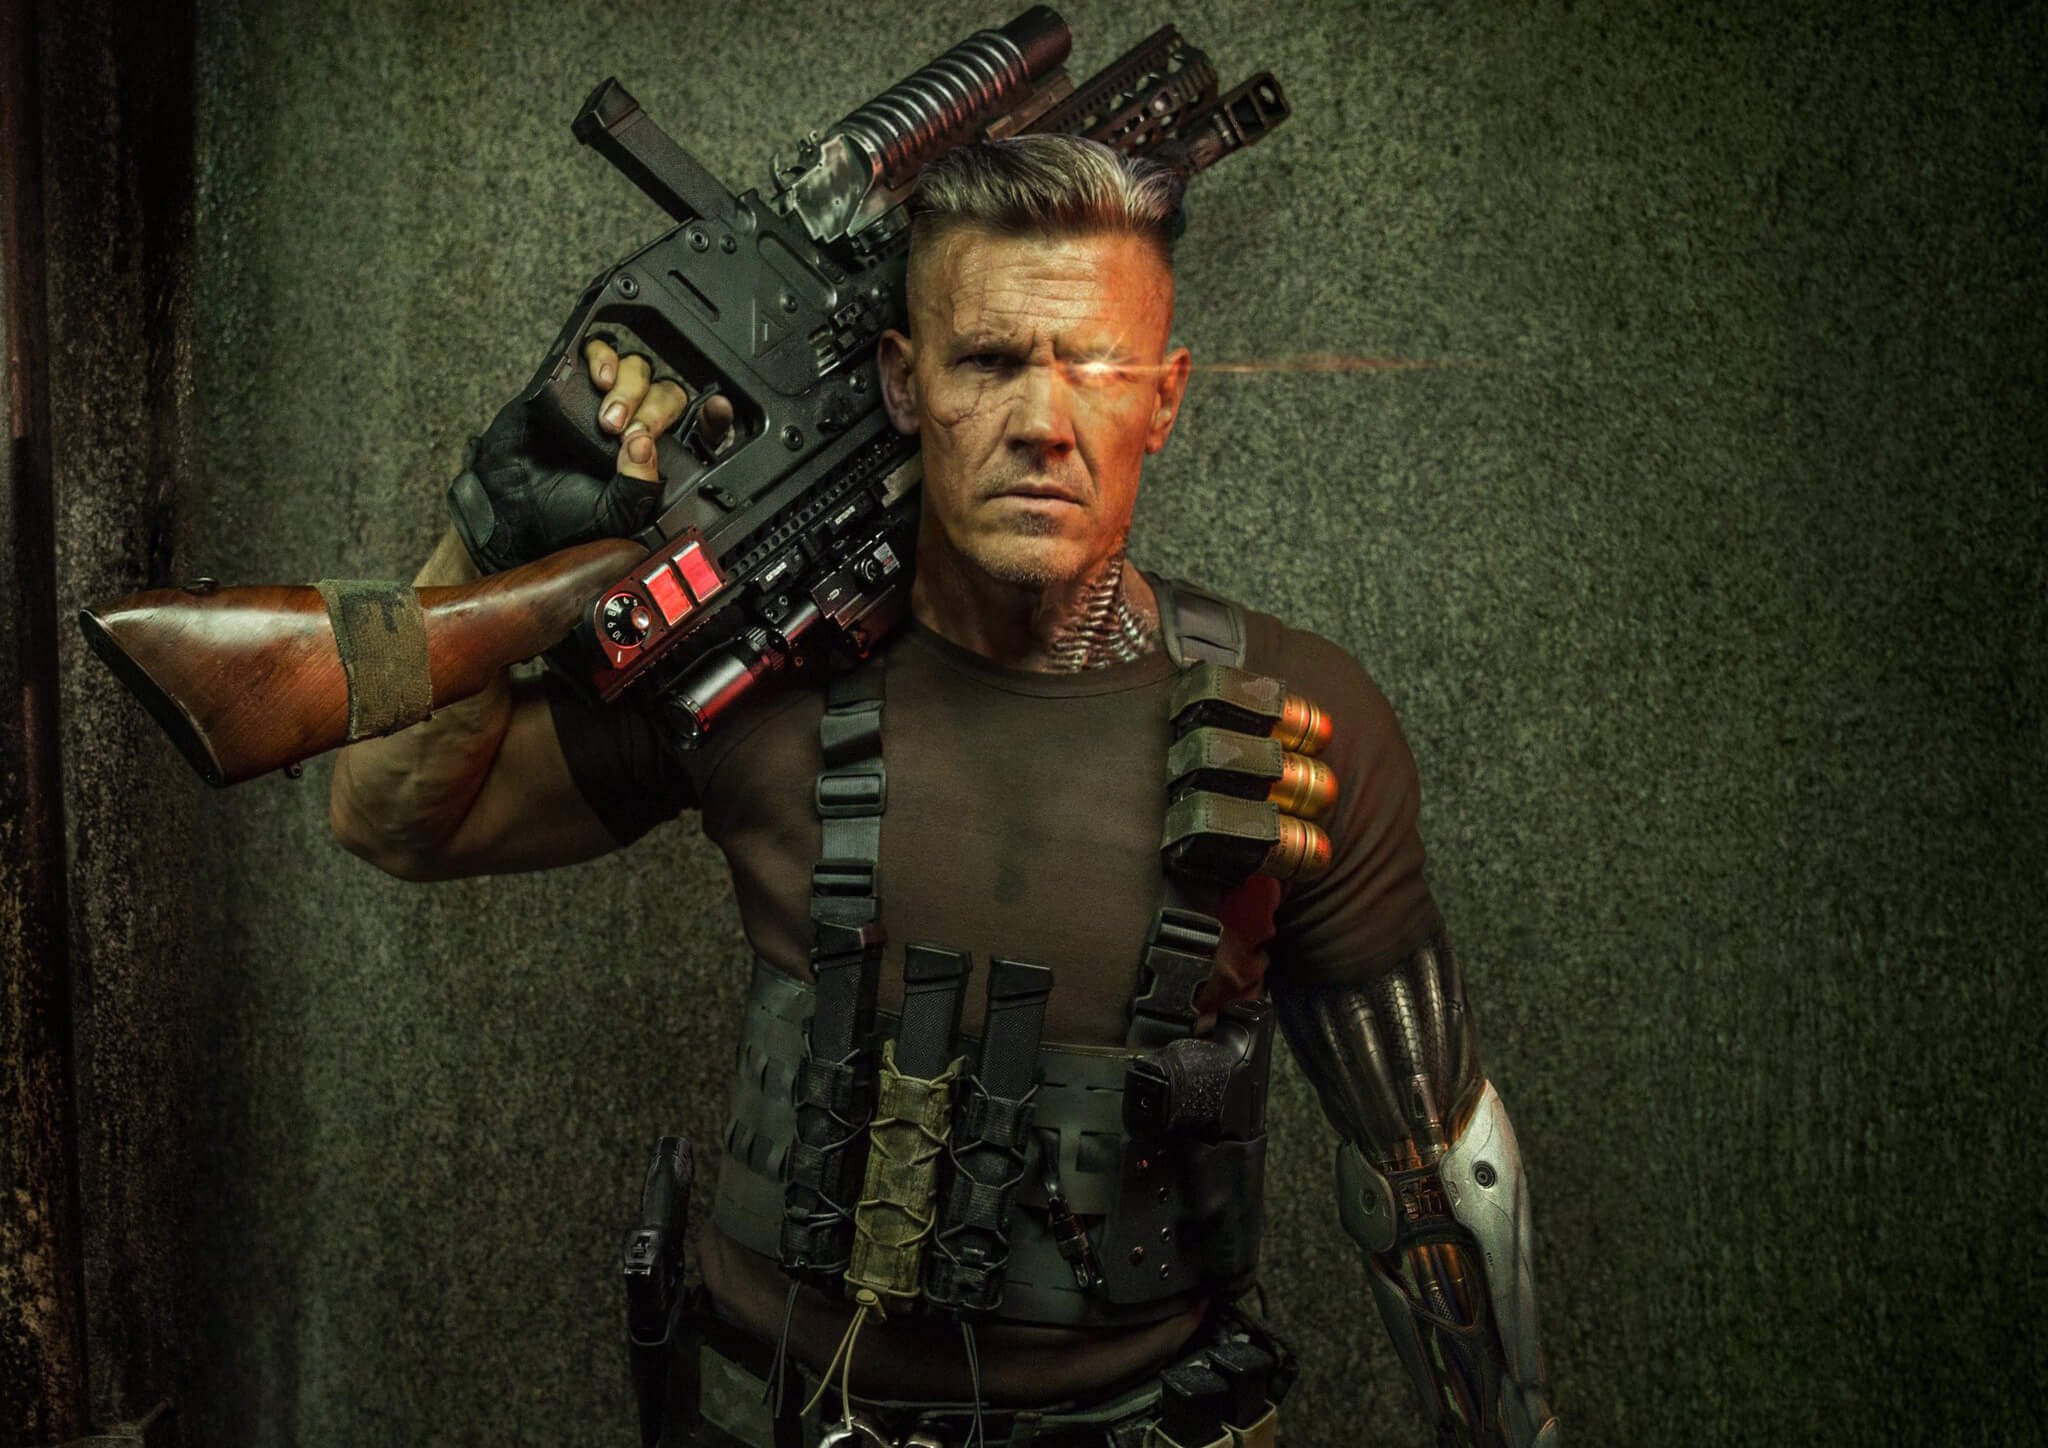 Josh Brolin Movies, Thanos, Height, Net Worth, Wife, Age, Mother, Kids, Haircut, Images, Daughter, Birthday, Biography, Married, Awards, Instagram, Imdb, Wiki, Facebook, Twitter (1)class=